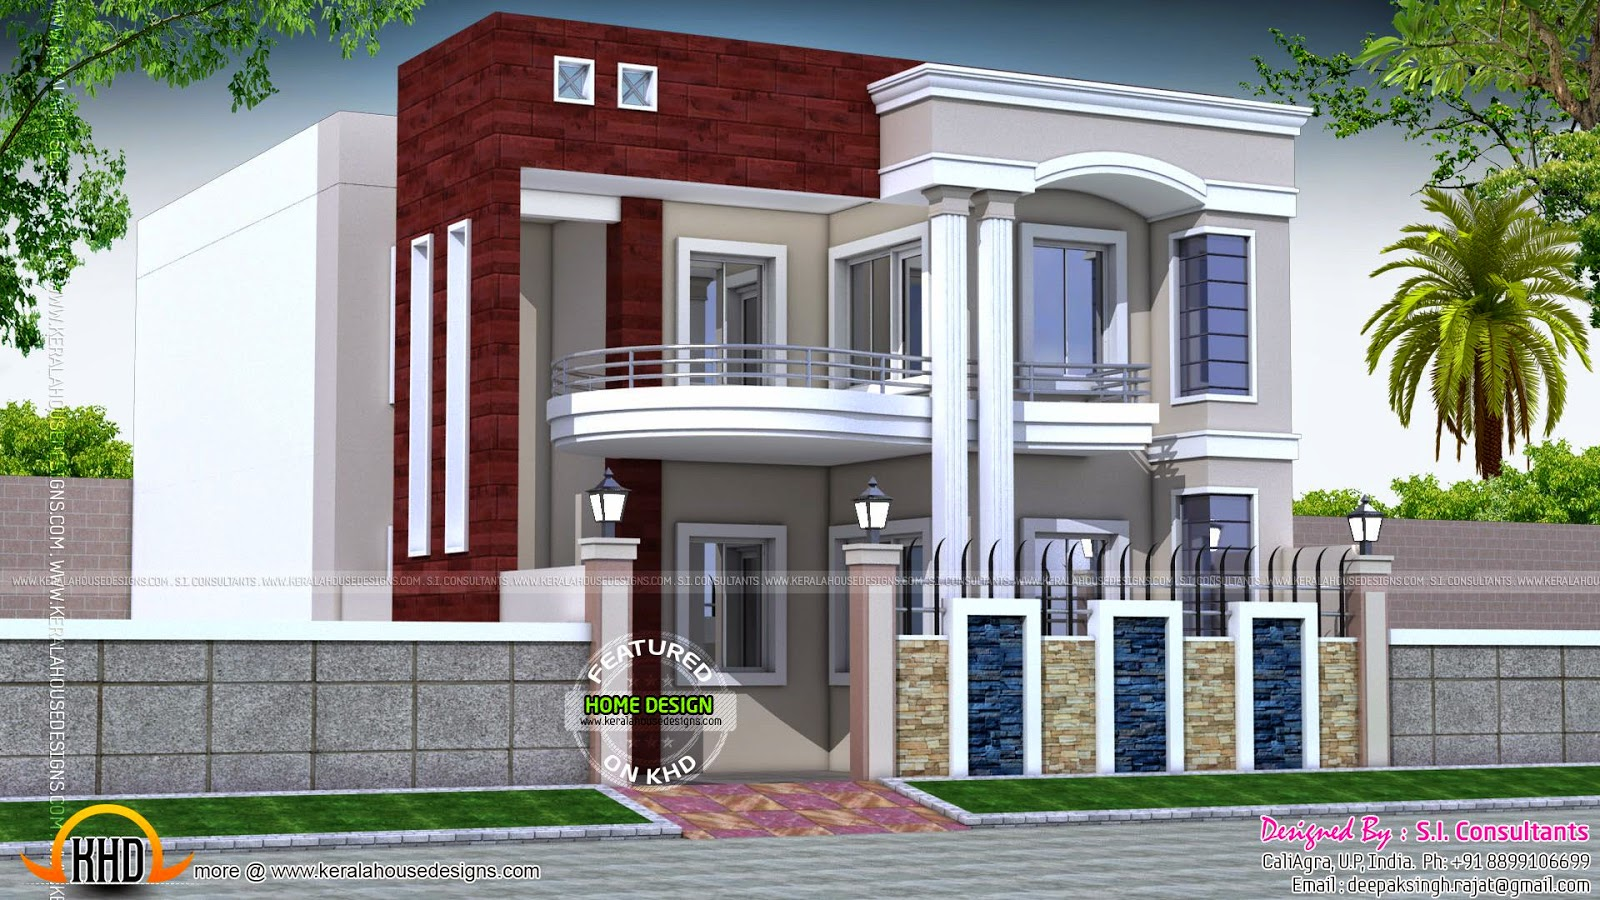 House design in north india kerala home design and floor for 2 bedroom house designs in india